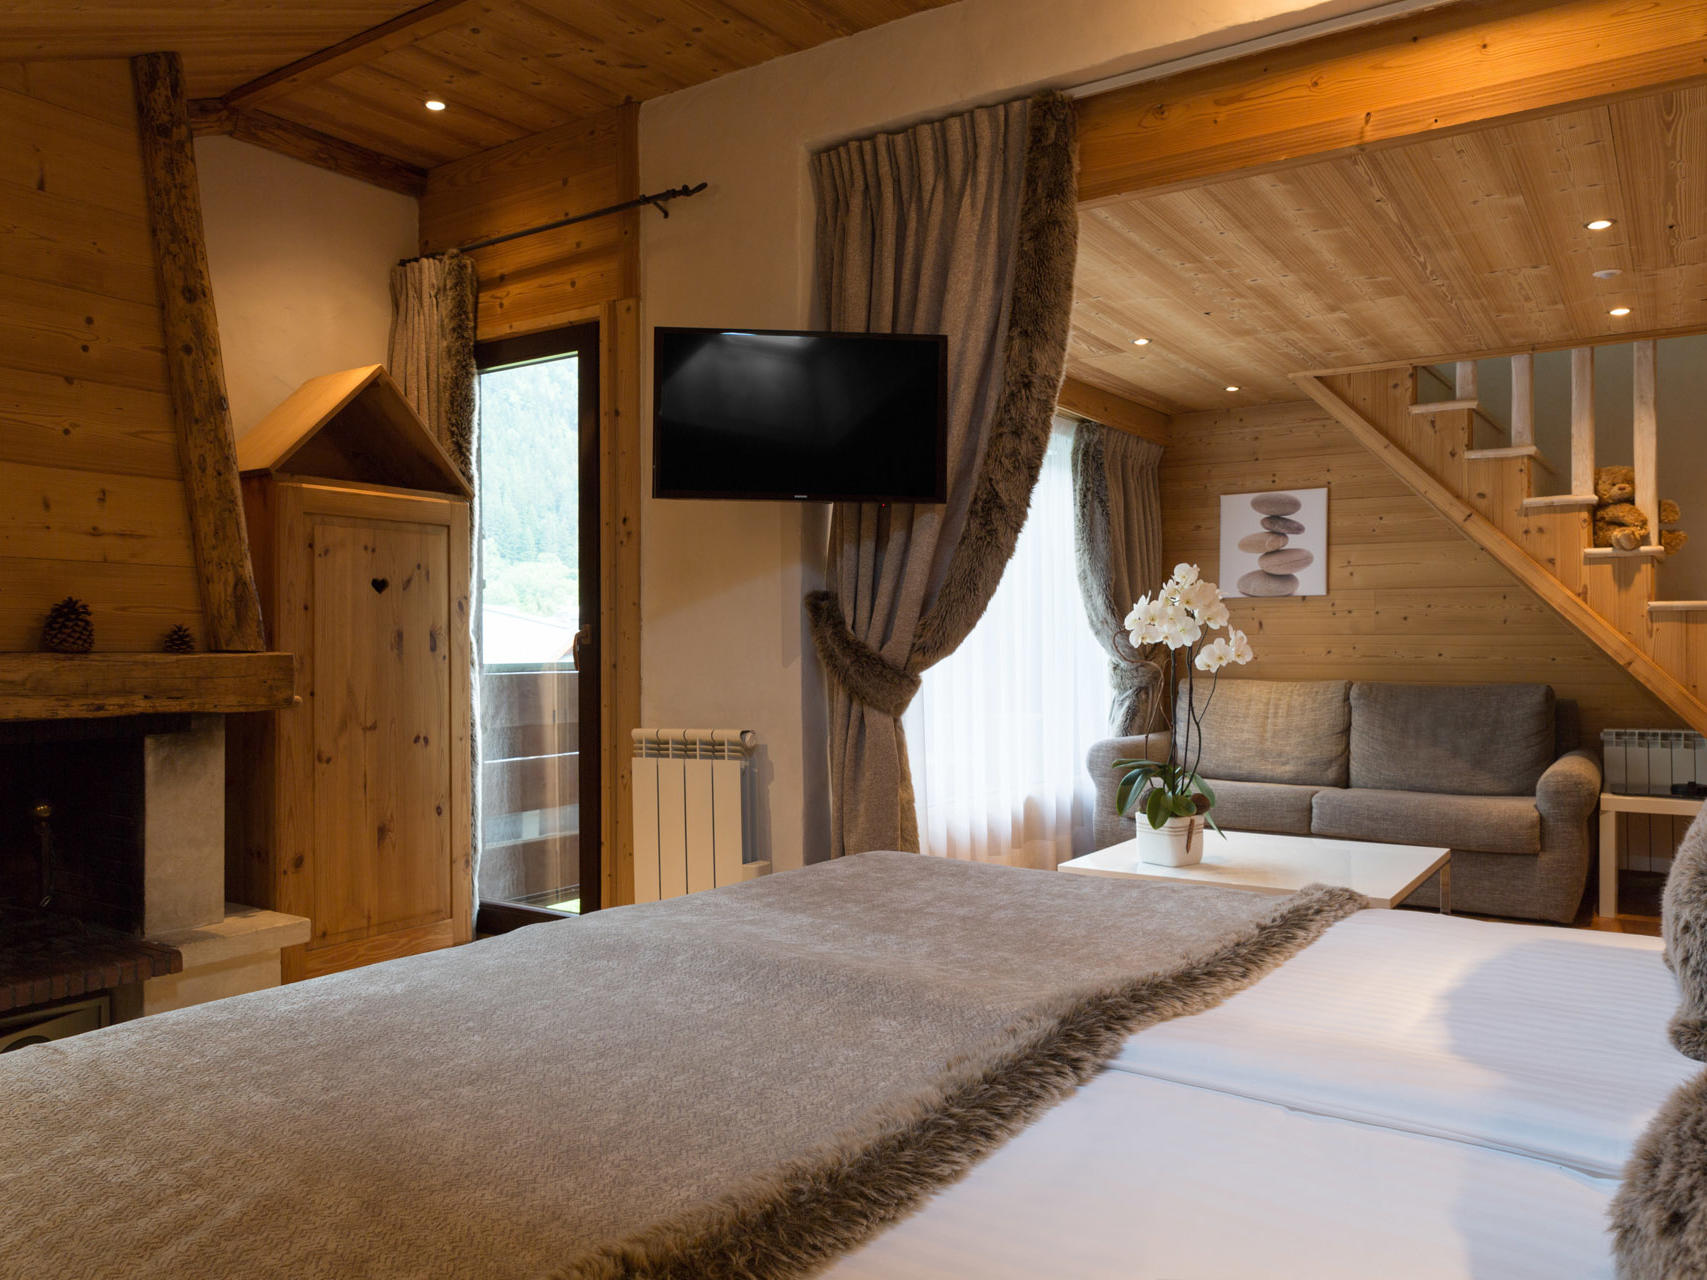 Suite at Chalet Hôtel La Chemenaz in Les Contamines-Montjoie